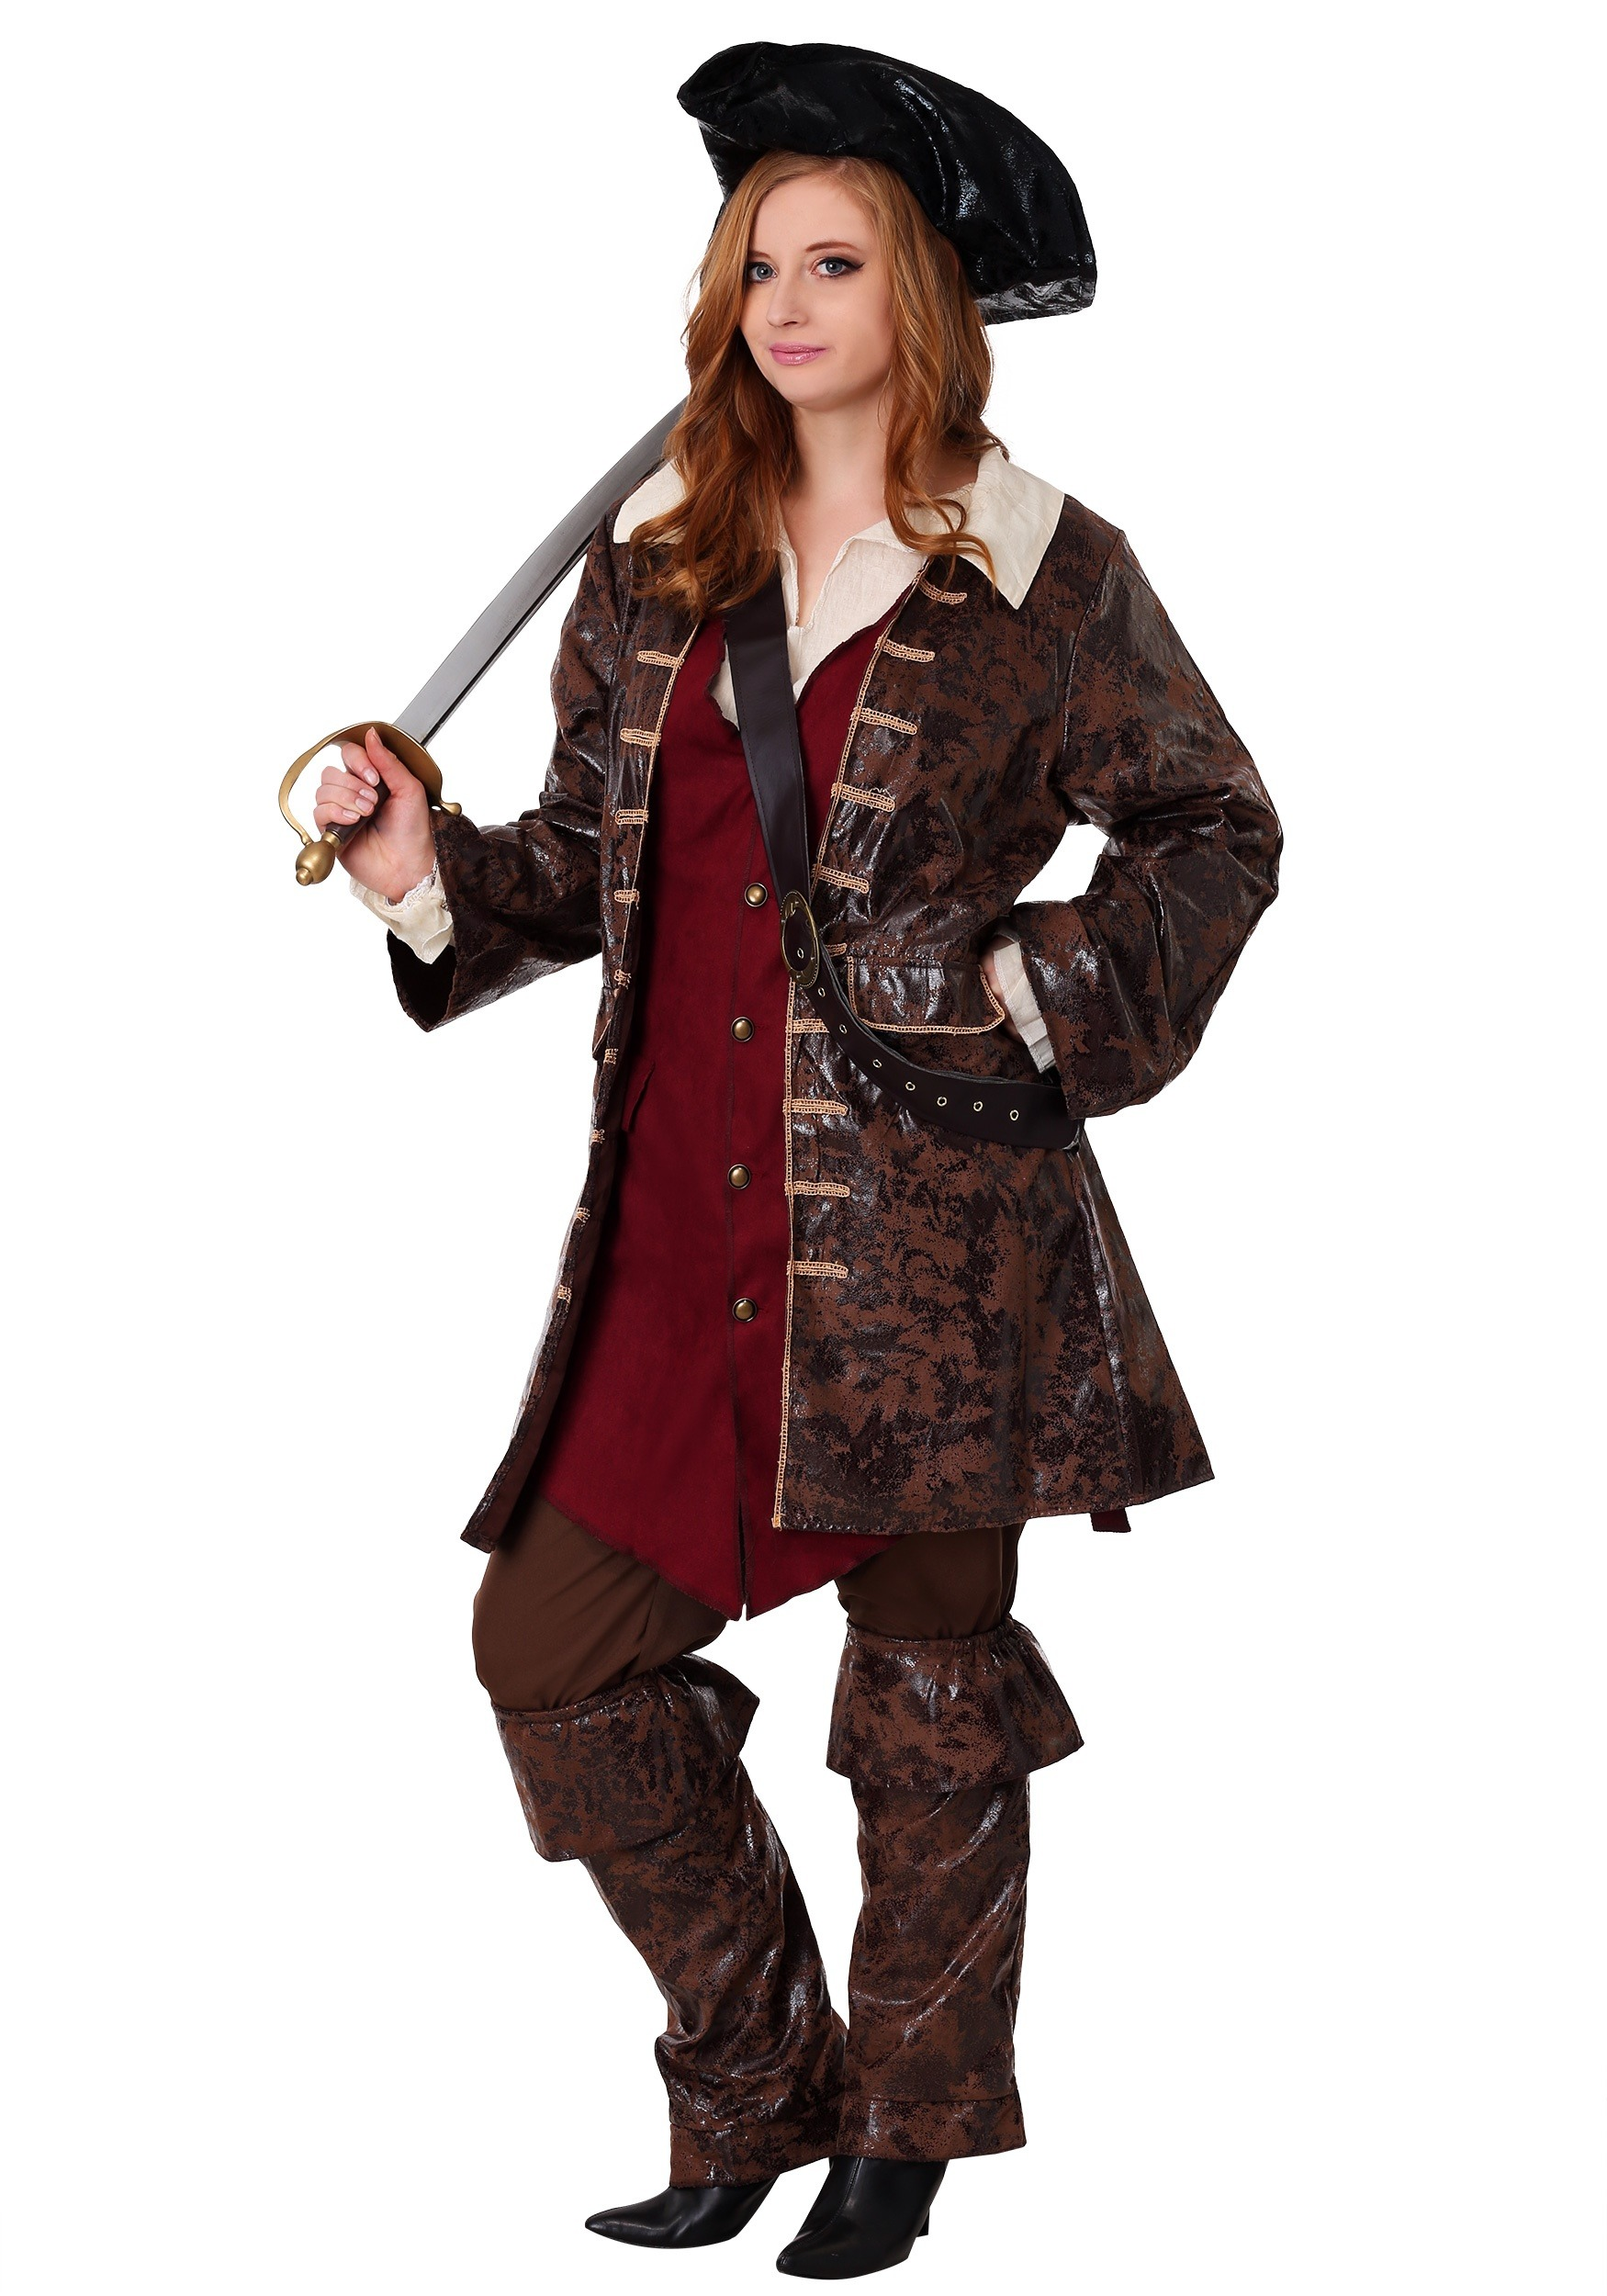 Plus Size Women's Caribbean Pirate Costume Homemade Rogue Costume